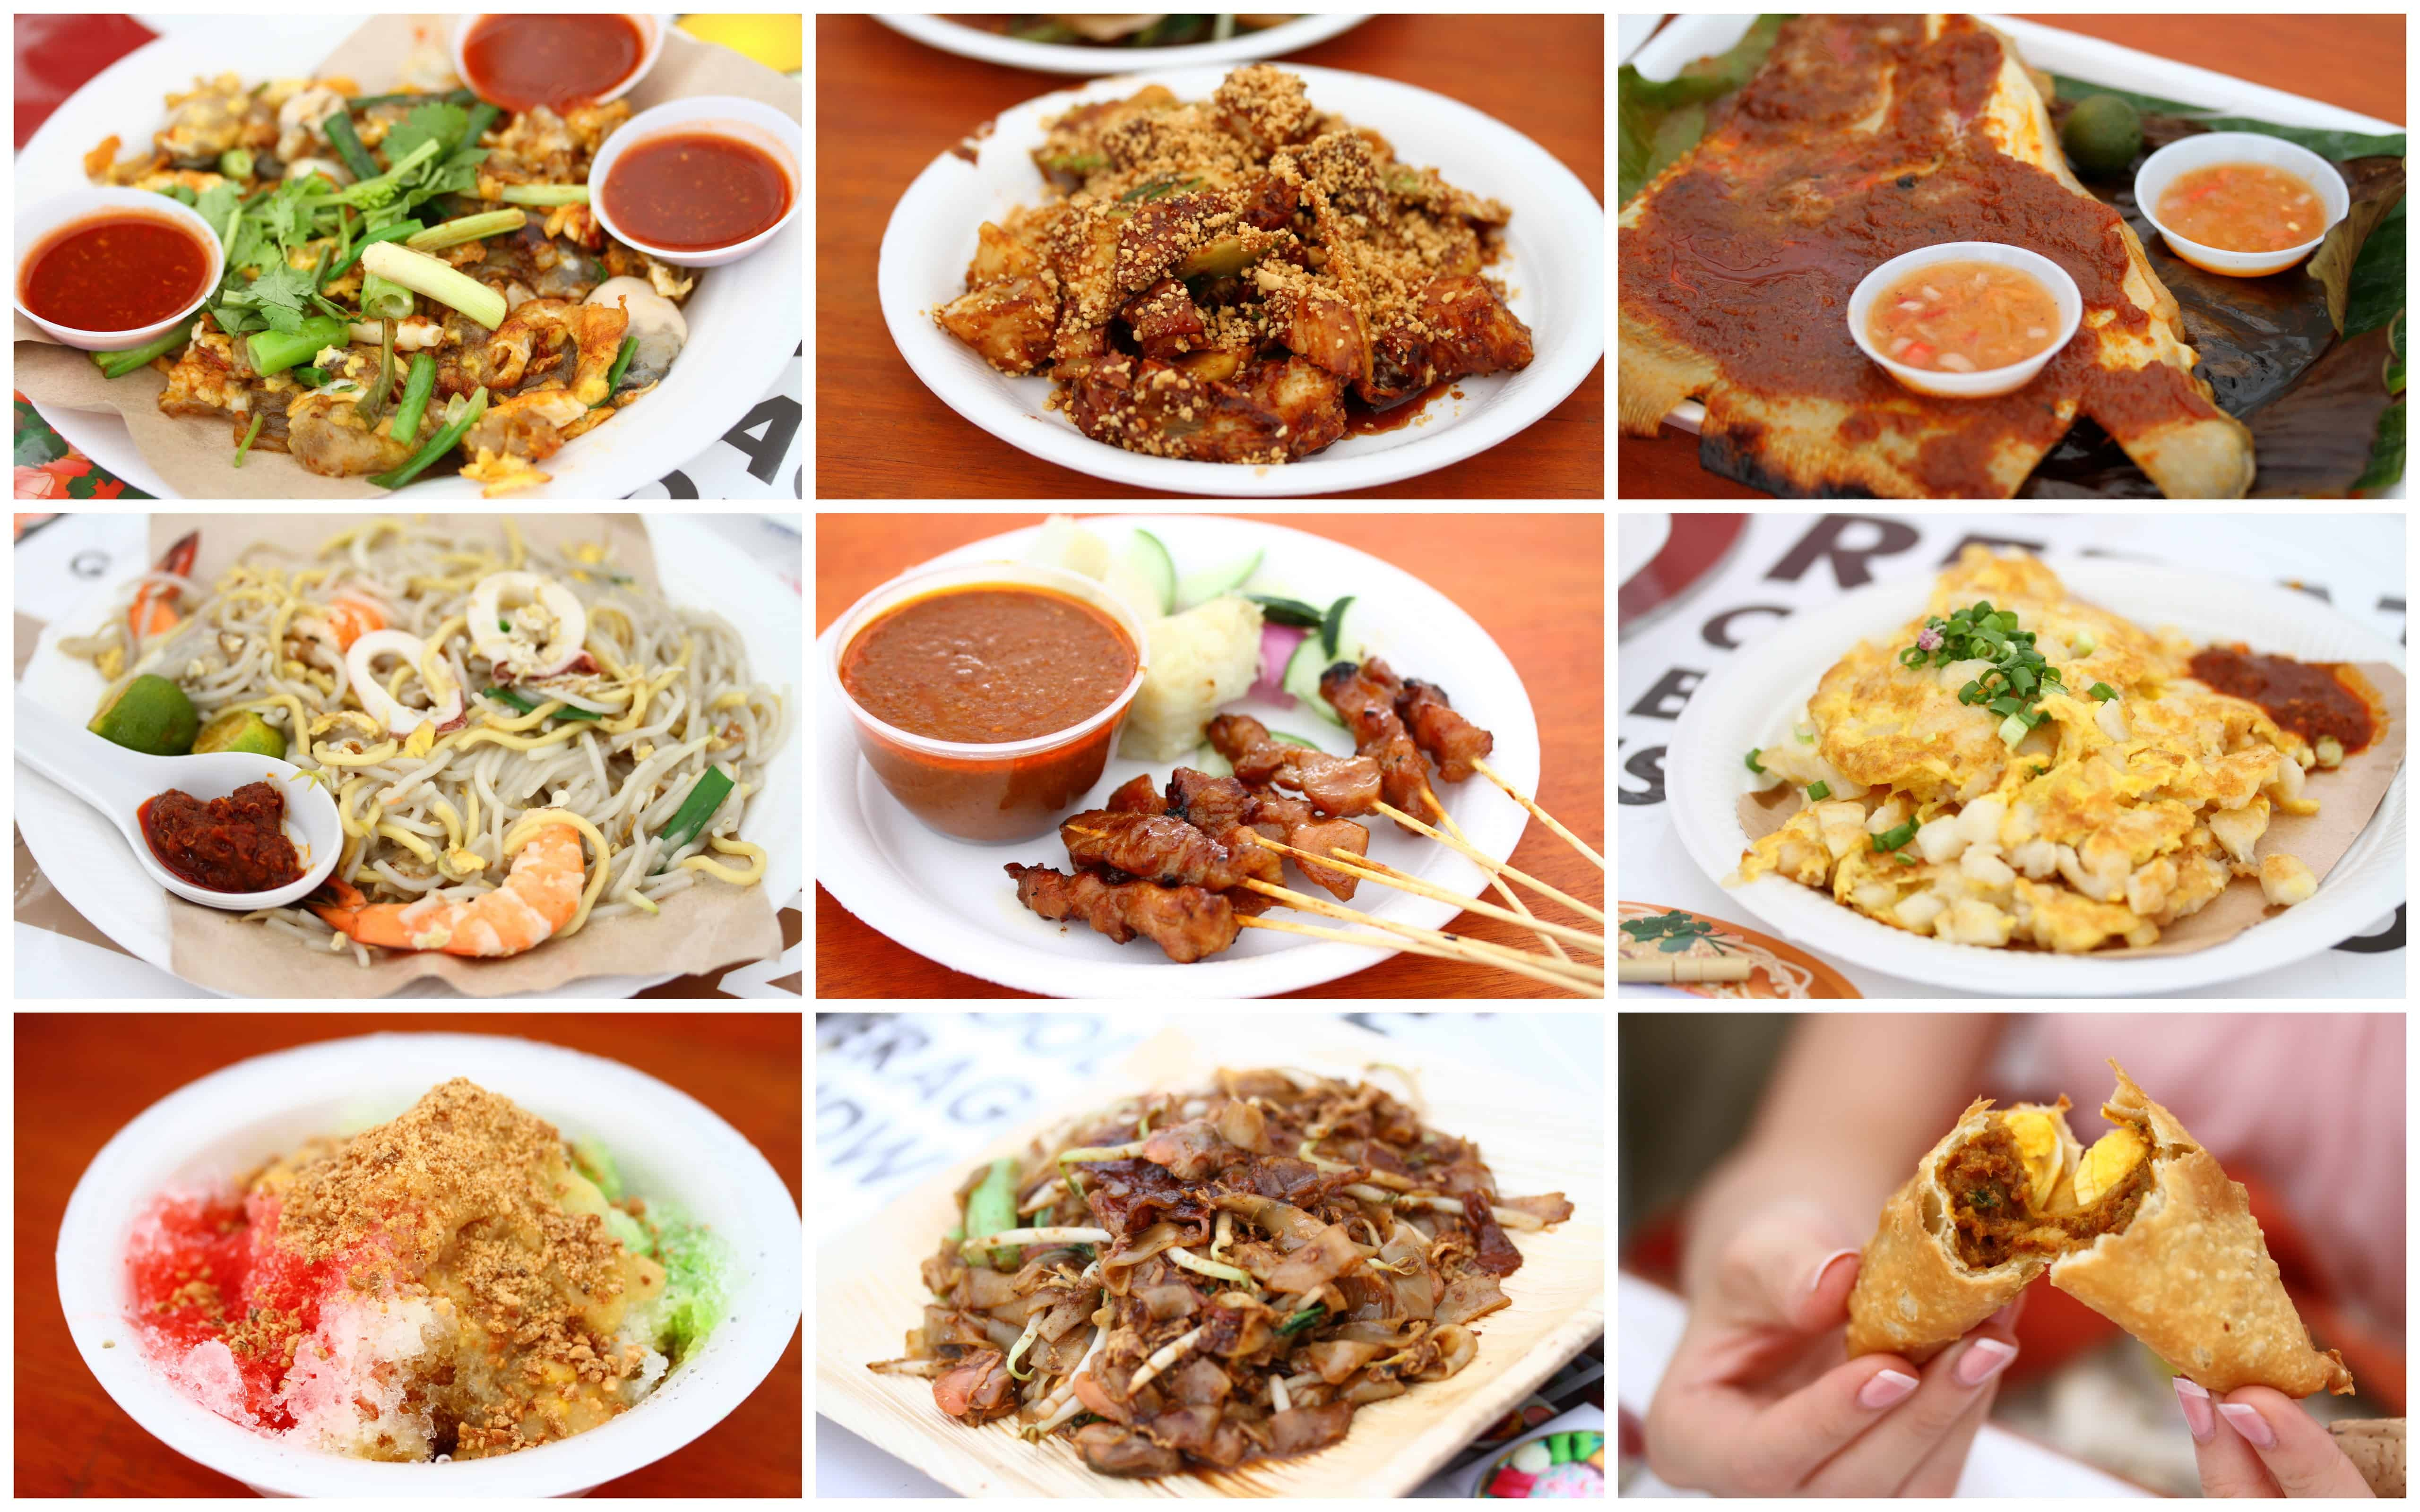 Singapore Favourite Food 2013 - Feast on a spread of local ...